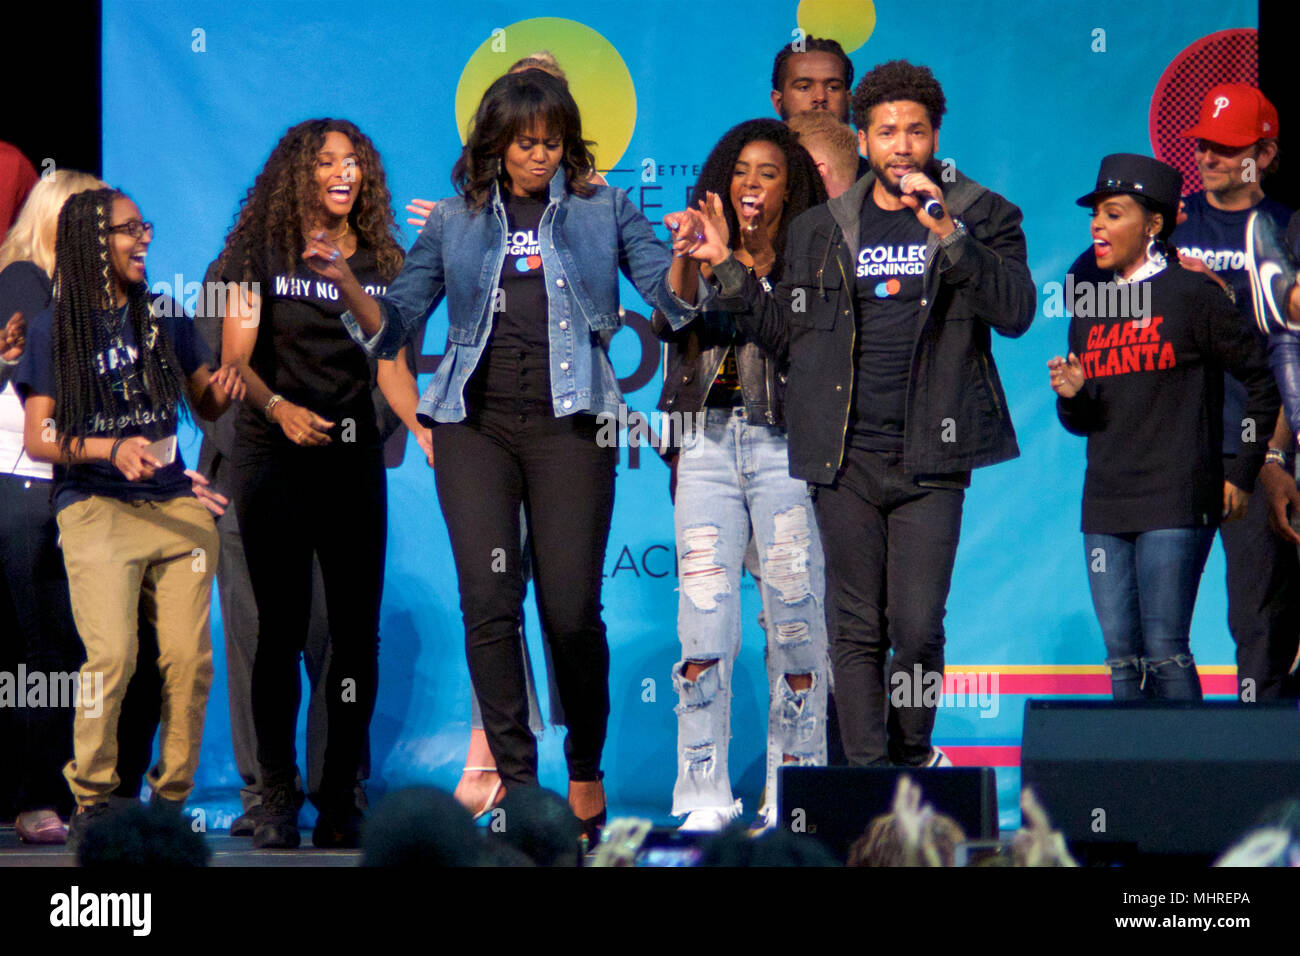 Philadelphia, USA. 2nd May 2018Michelle Obama is joined by students, stars, performing artists and athletes for the fifth  annual College Signing Day, hosted by Reach Higher, at Temple University's Liacouras Center in North Philadelphia, on May 2, 2018. The Former First Lady is joined by 7.000 students and (on stage) stars, performing artists and athletes including Bradley Cooper, Rebel Wilson, Zendaya, Robert De Niro, Camila Cabello, Questlove, Anthony Mackie and Janelle Monae. Credit: Bastiaan Slabbers/Alamy Live News Stock Photo